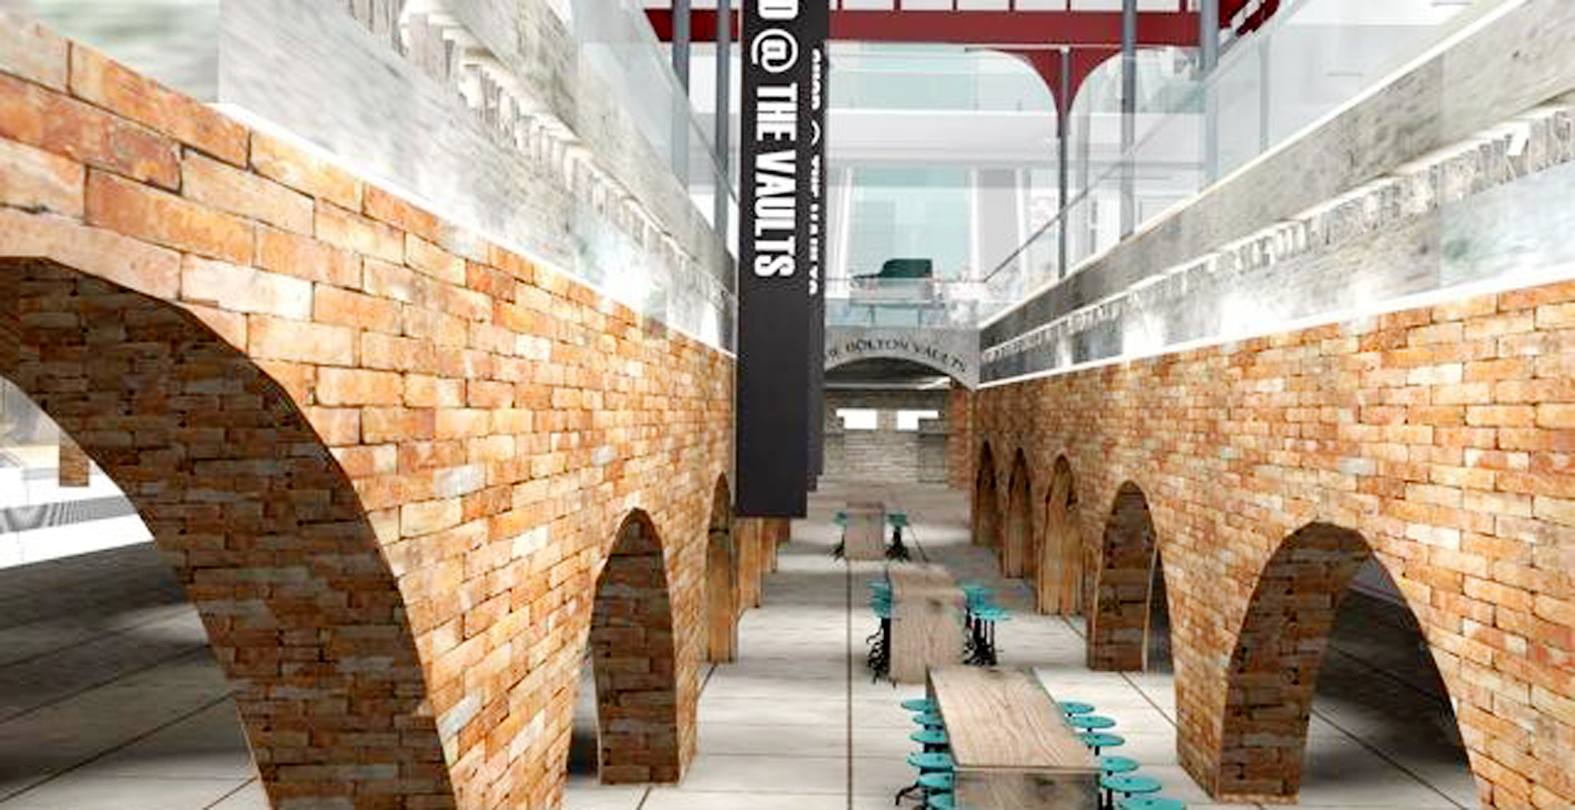 Revealed: How new restaurant and bar area in vaults of Market Place will look